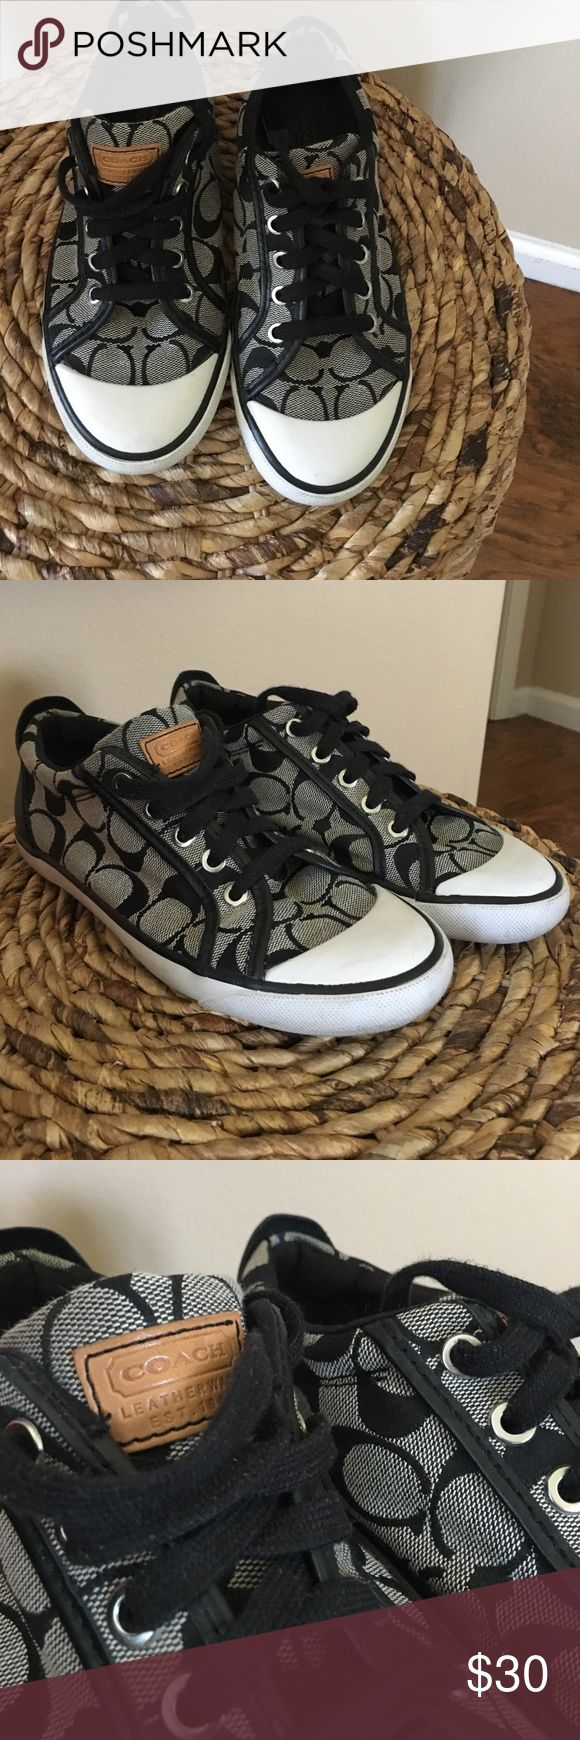 Size 6 coach tennis shoes Mint condition Coach tennis shoes in black and grey. Size 6 medium. No stains, smells etc. come from a smoke / pet free home✌🏻 Coach Shoes Sneakers